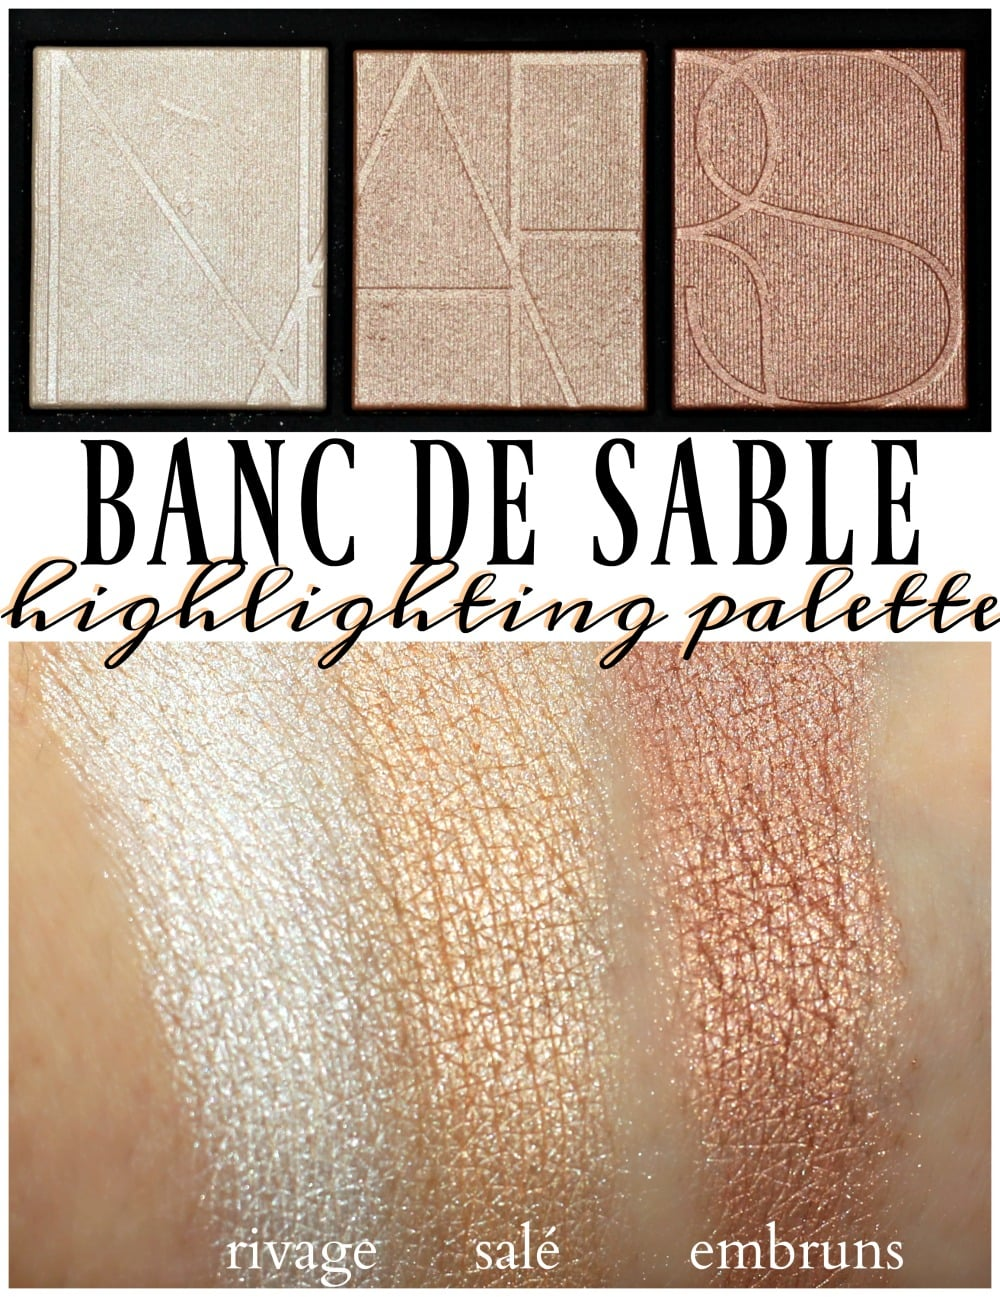 Banc Palette Nars Banc De Sable Highlighter Palette Swatches Review